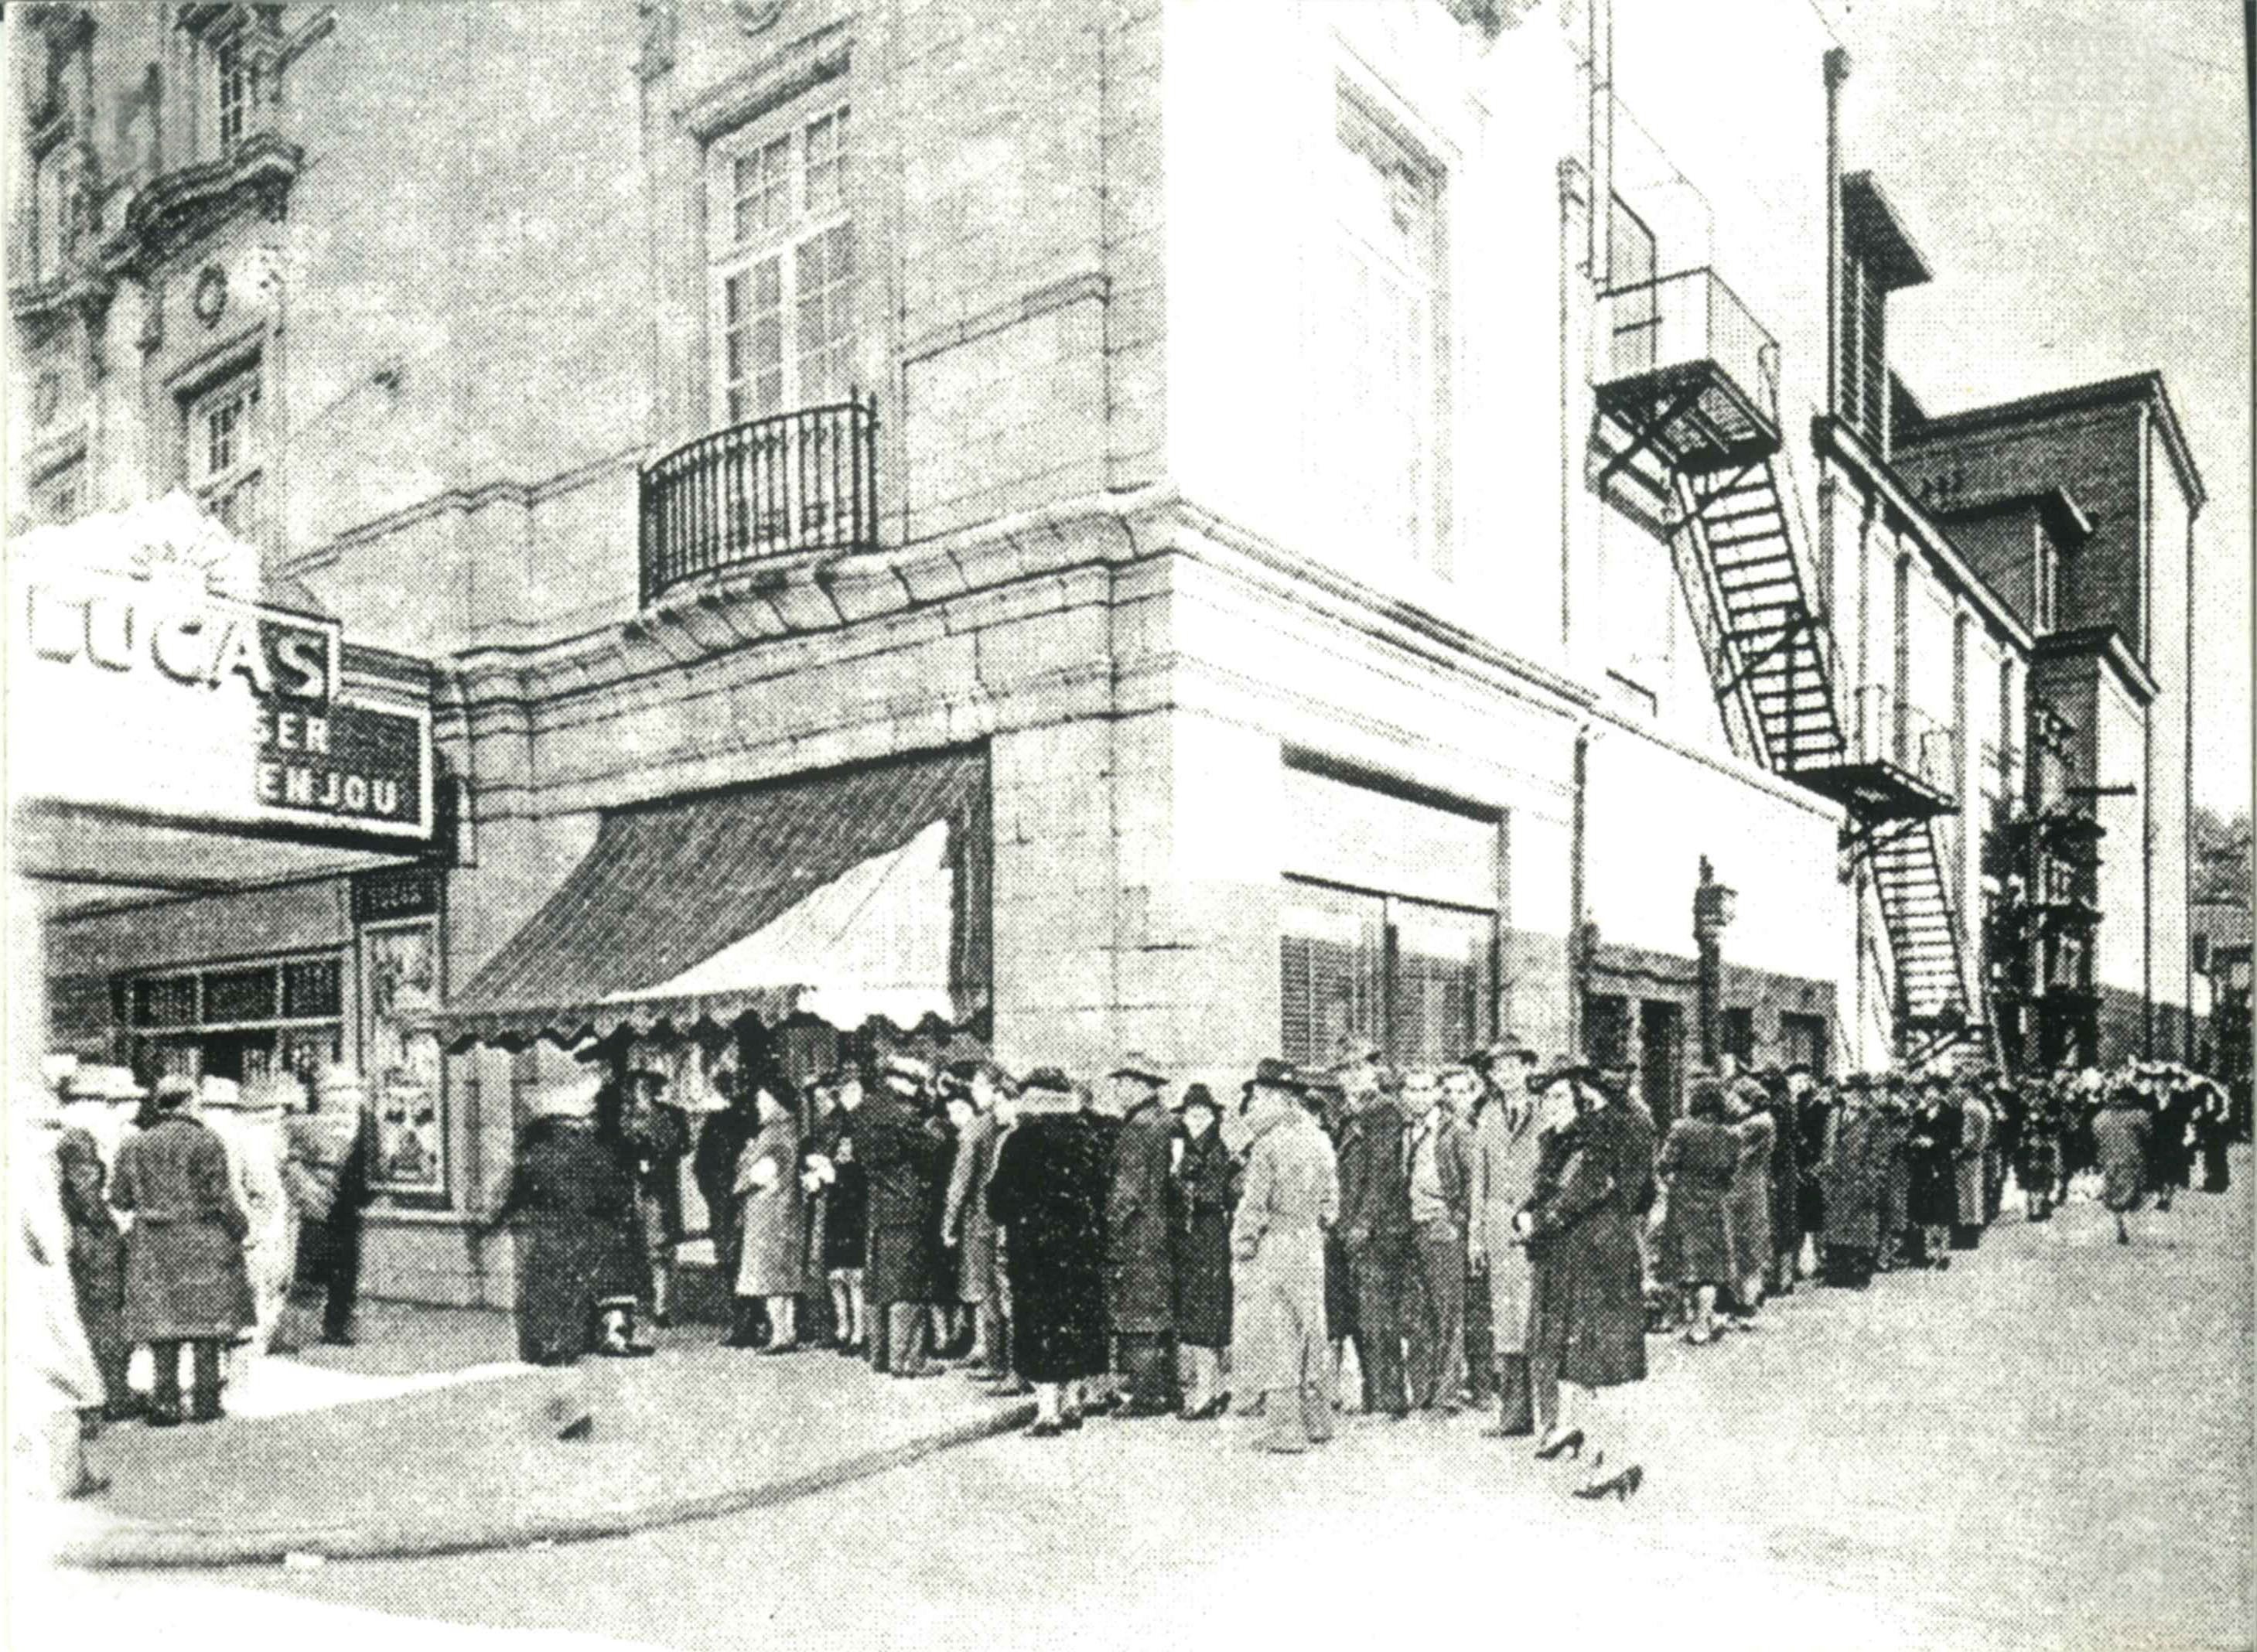 Archival photo of line at opening of Gone With The Wind at the Lucas in 1939.